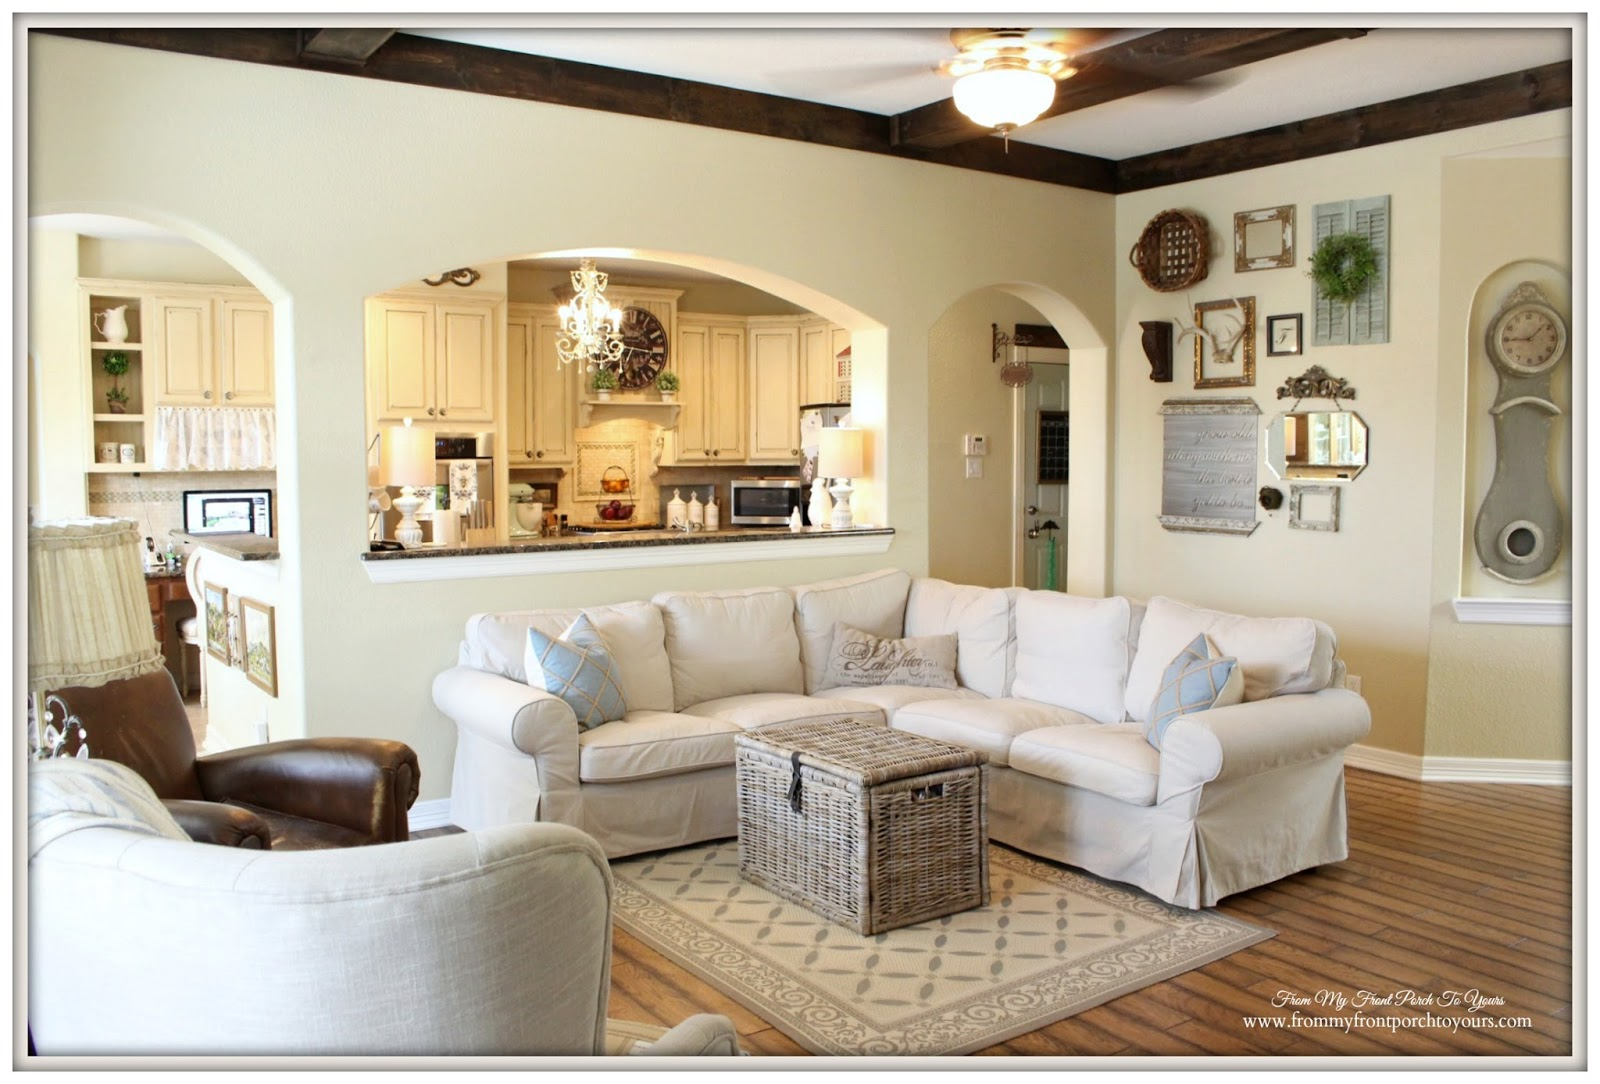 From My Front Porch To Yours: Farmhouse Living Room With ...